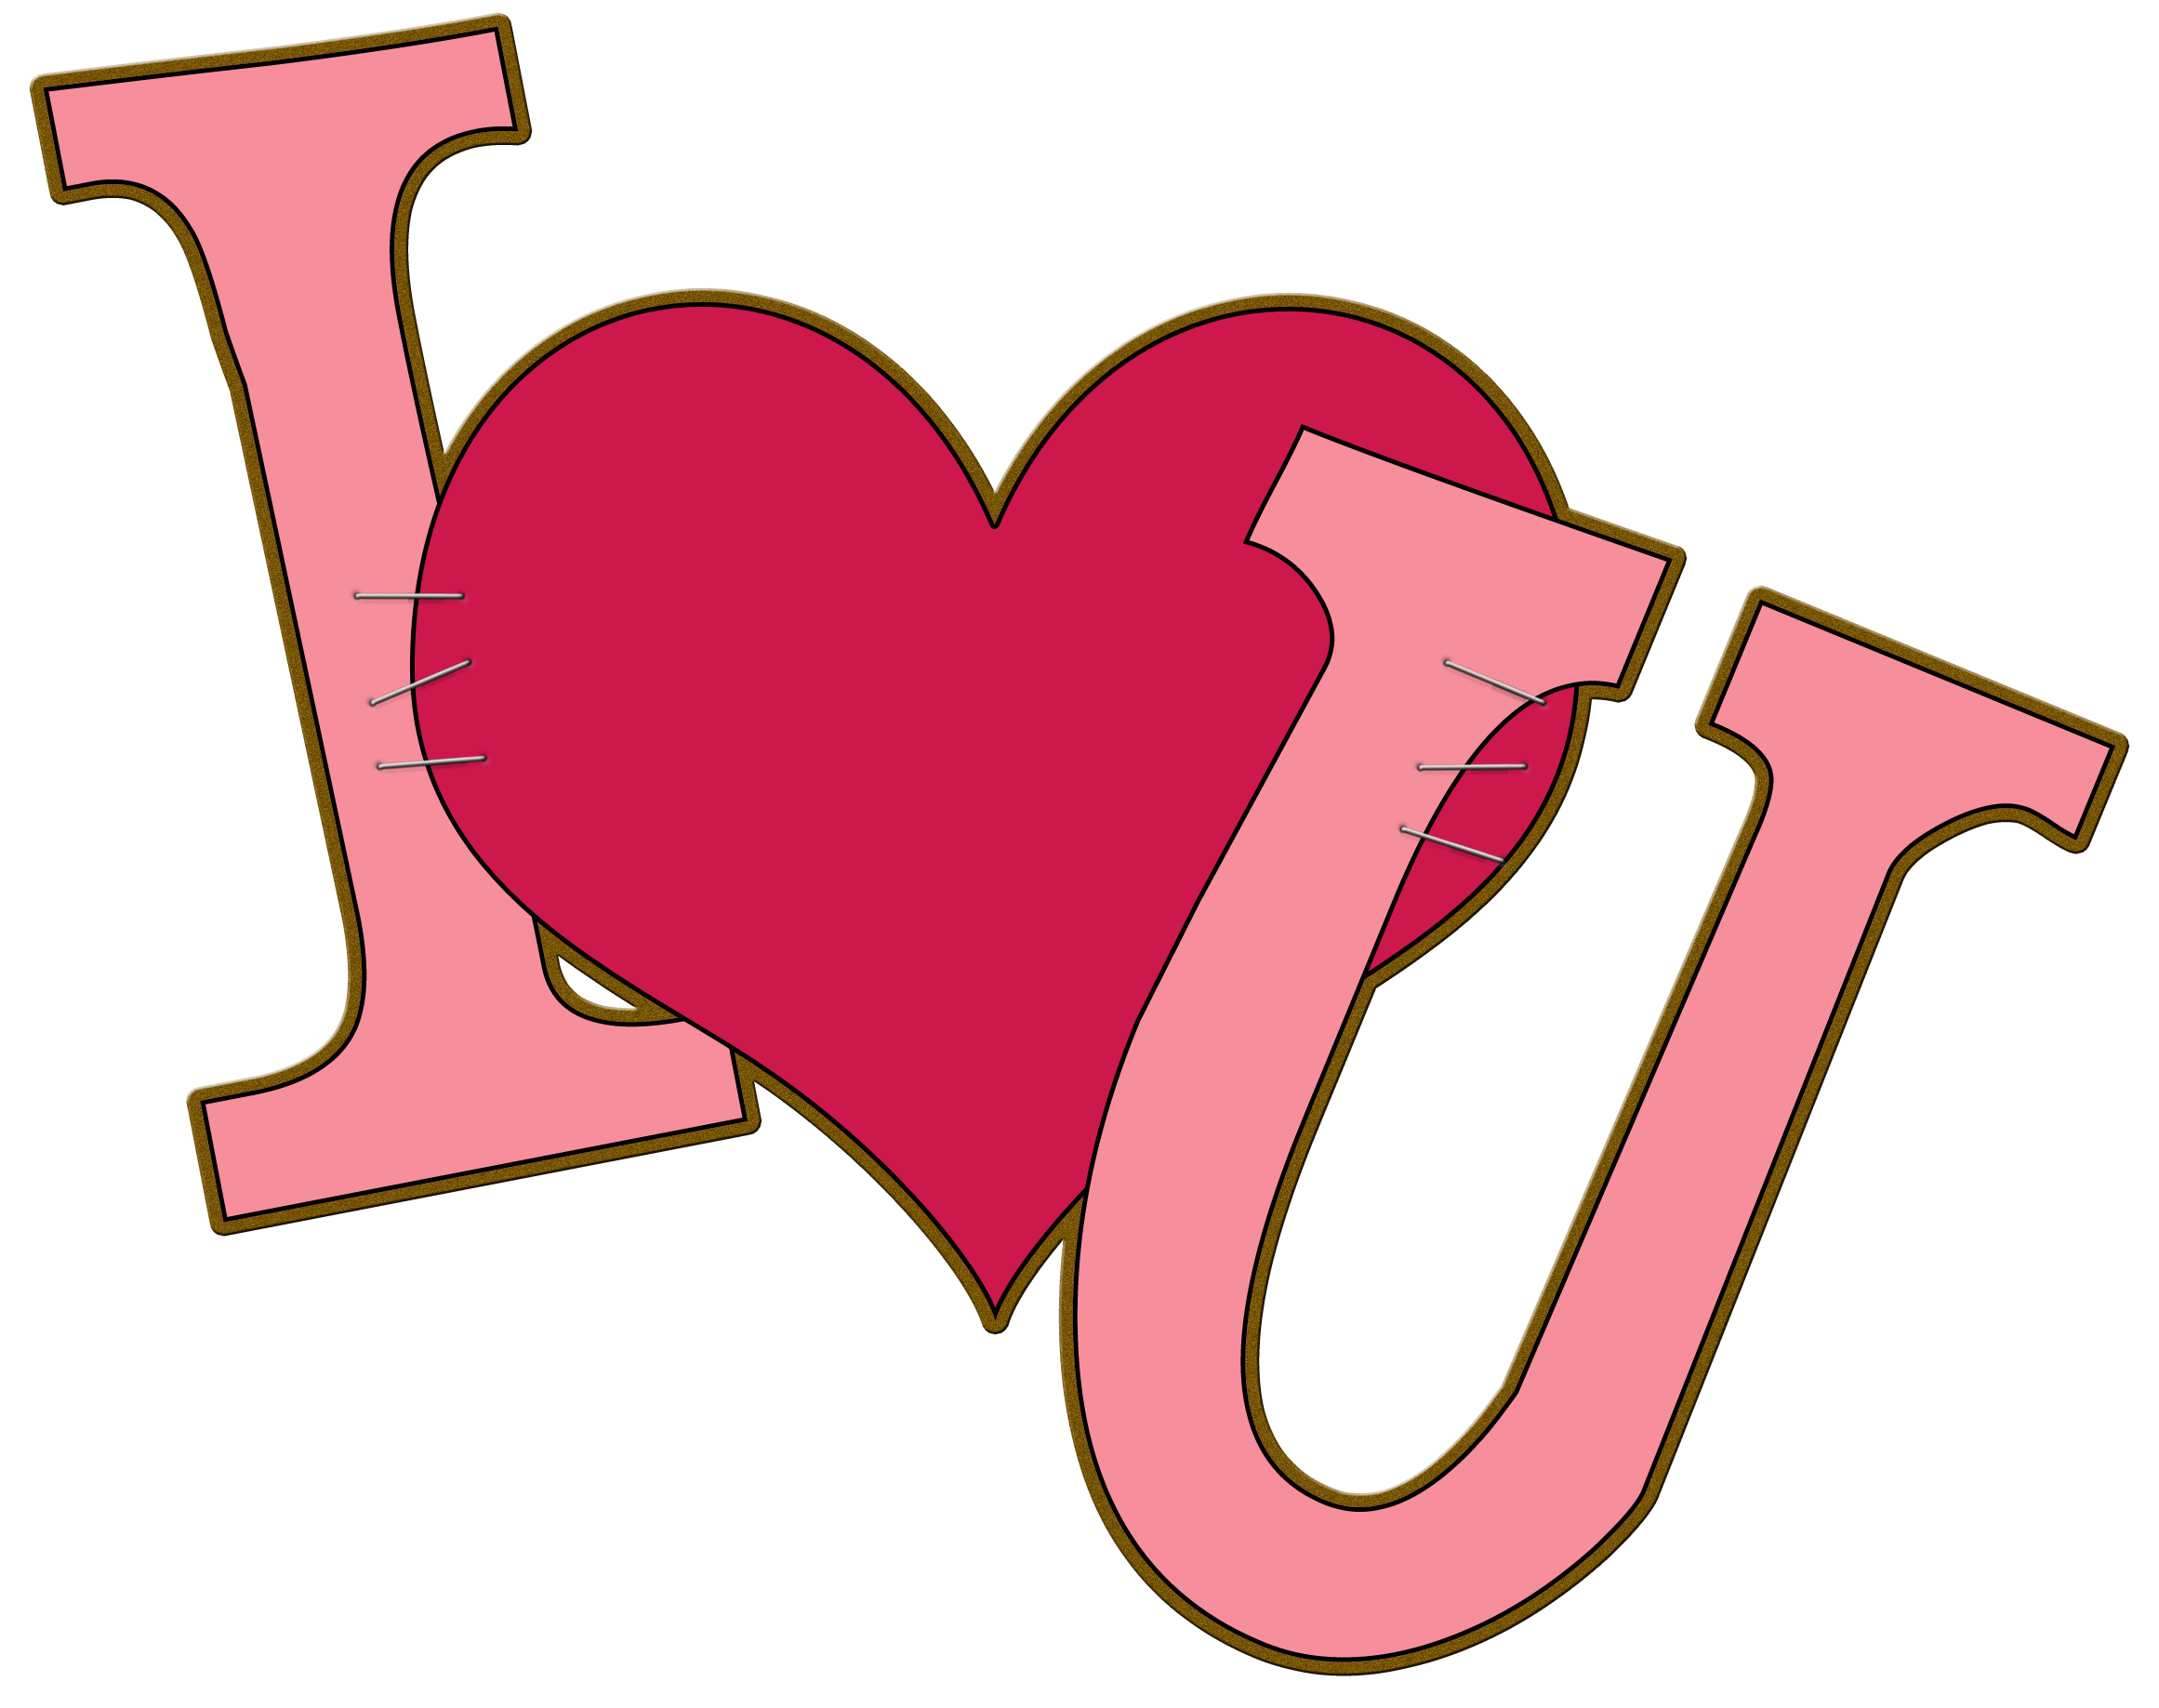 Love Clipart PNG - 77179